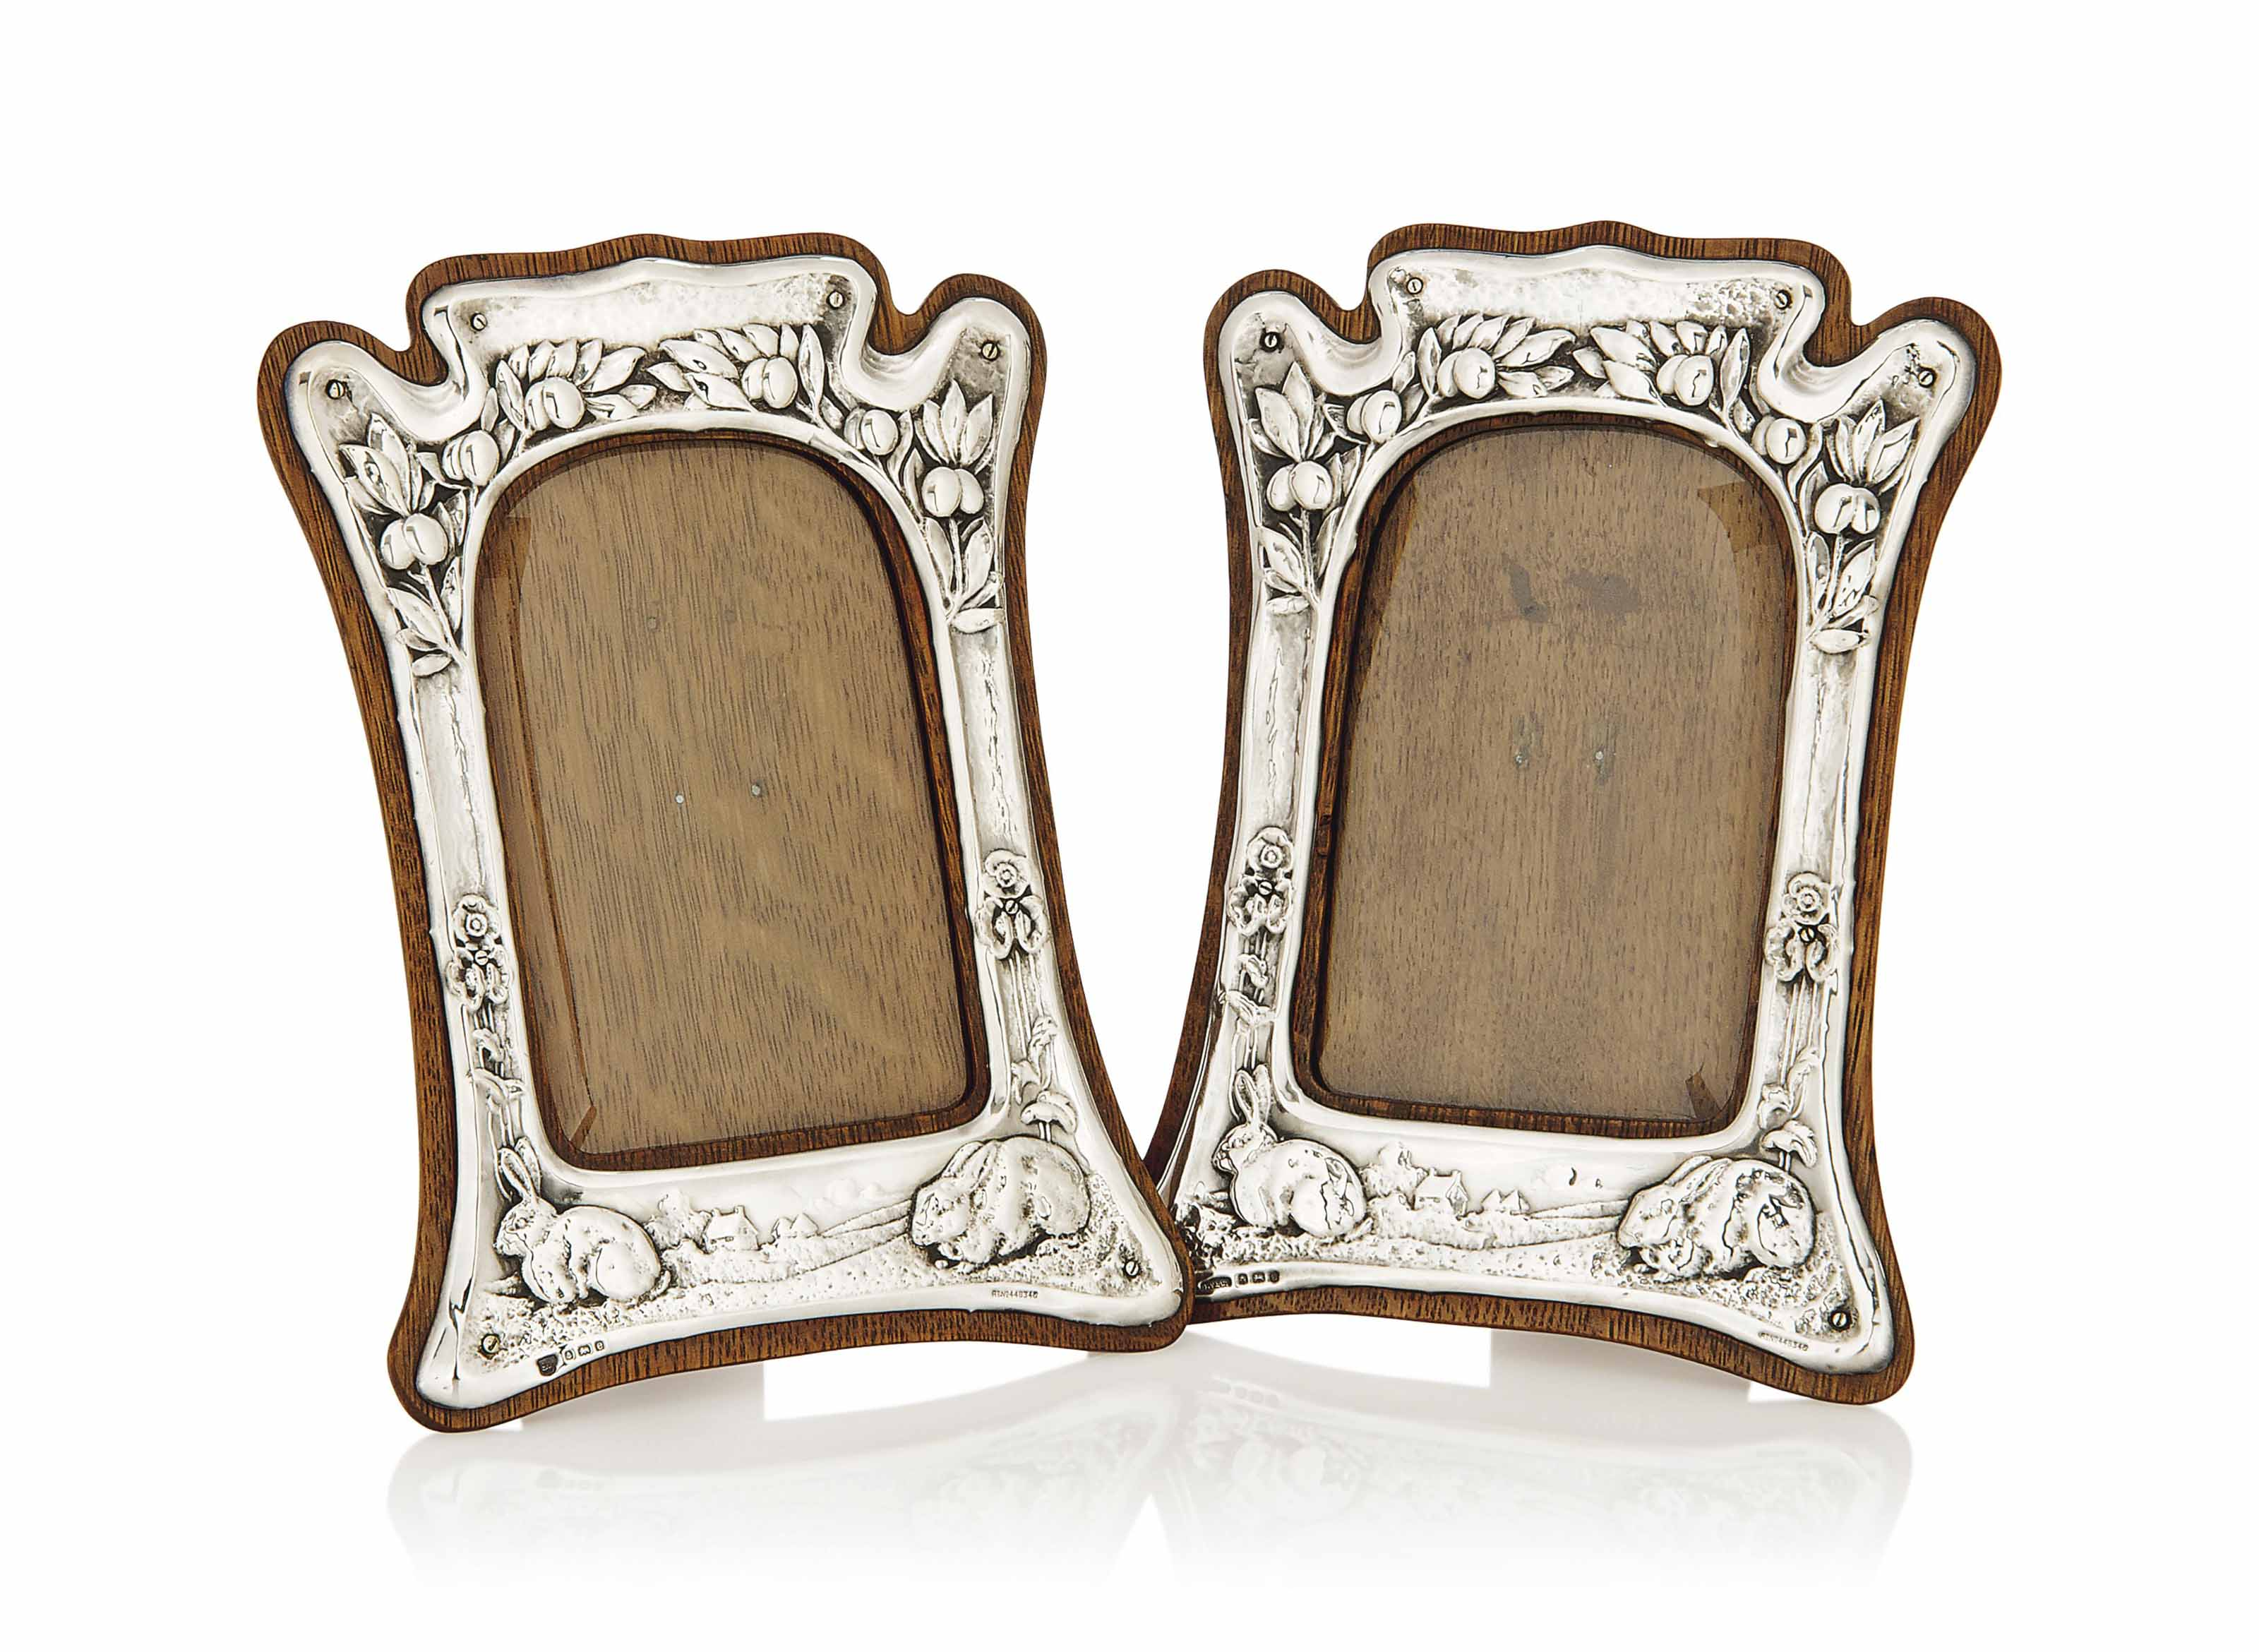 A MATCHED PAIR OF SILVER AND OAK PHOTOGRAPH FRAMES BY JAMES DEAKIN & SONS AND GOURDEL VALES & CO